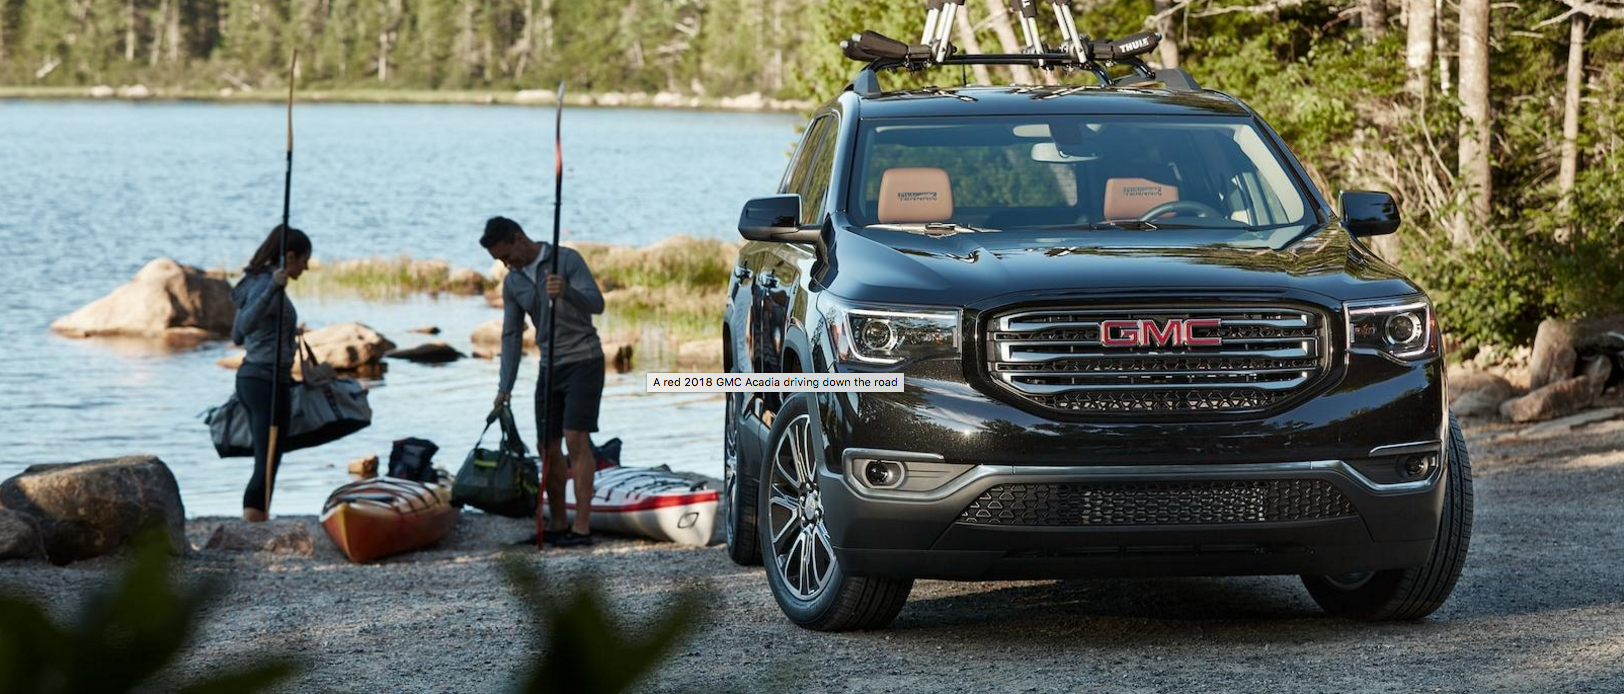 The 2018 Gmc Acadia Is The Ideal Suv For Your Daily Drive Now